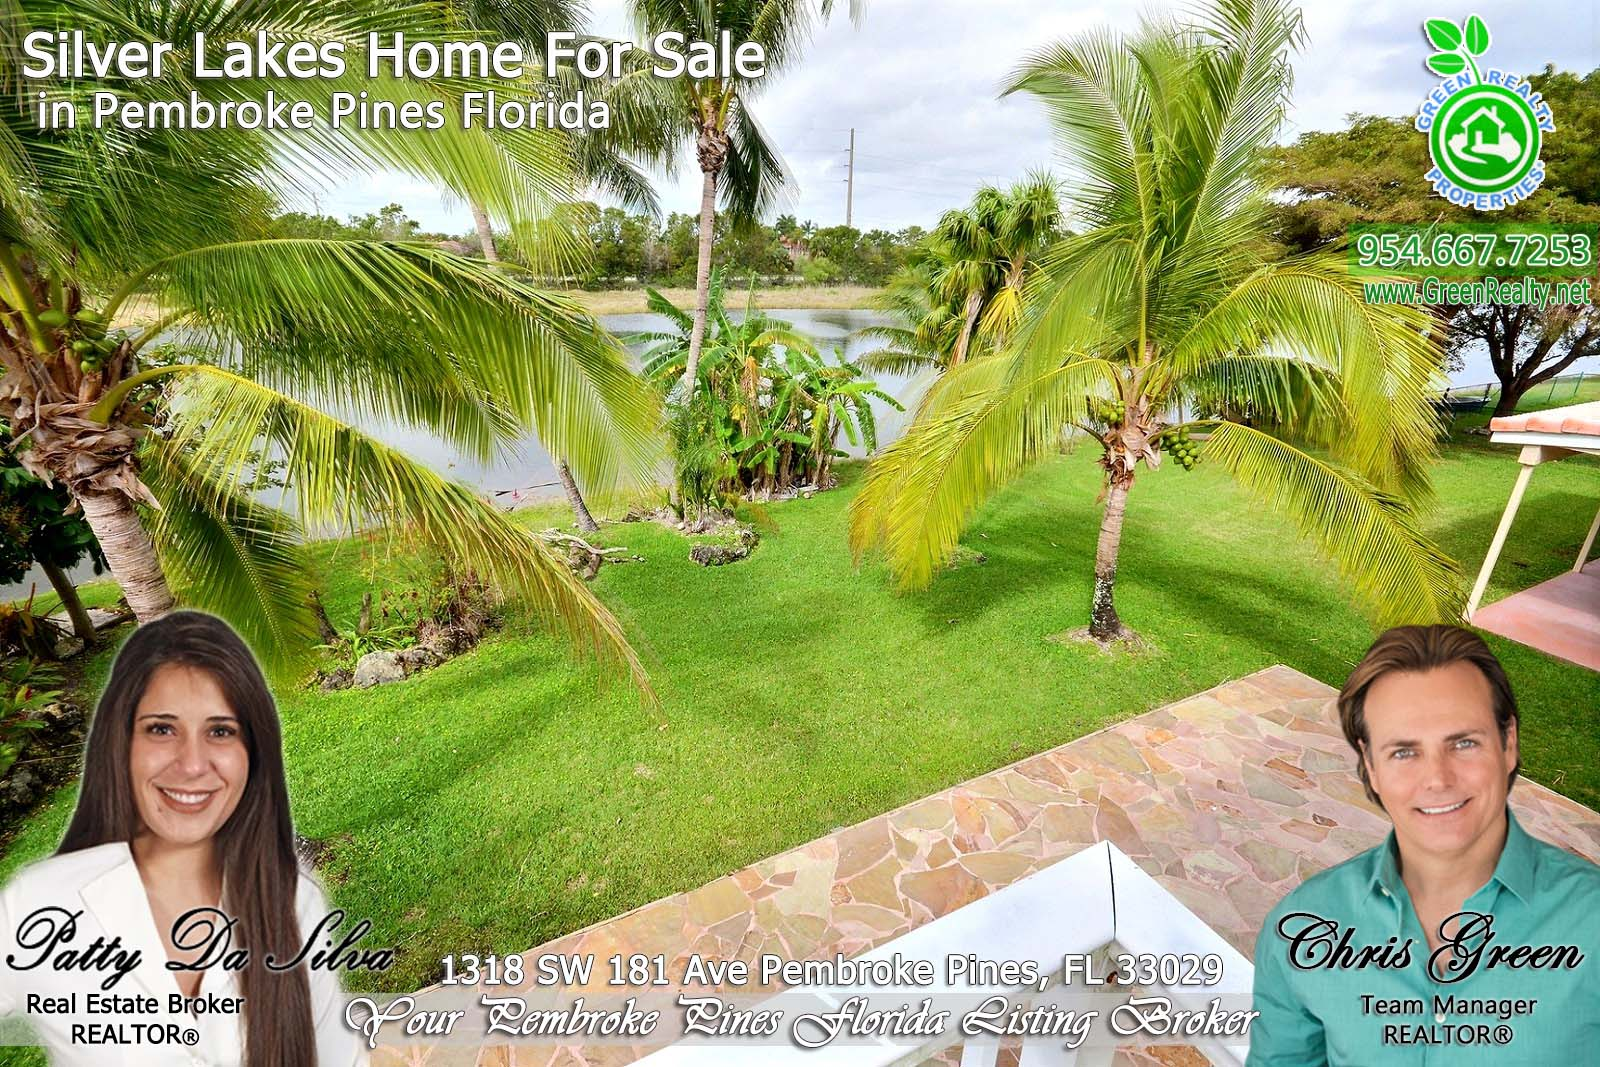 18 Homes For Sale in Silver Lakes (4)